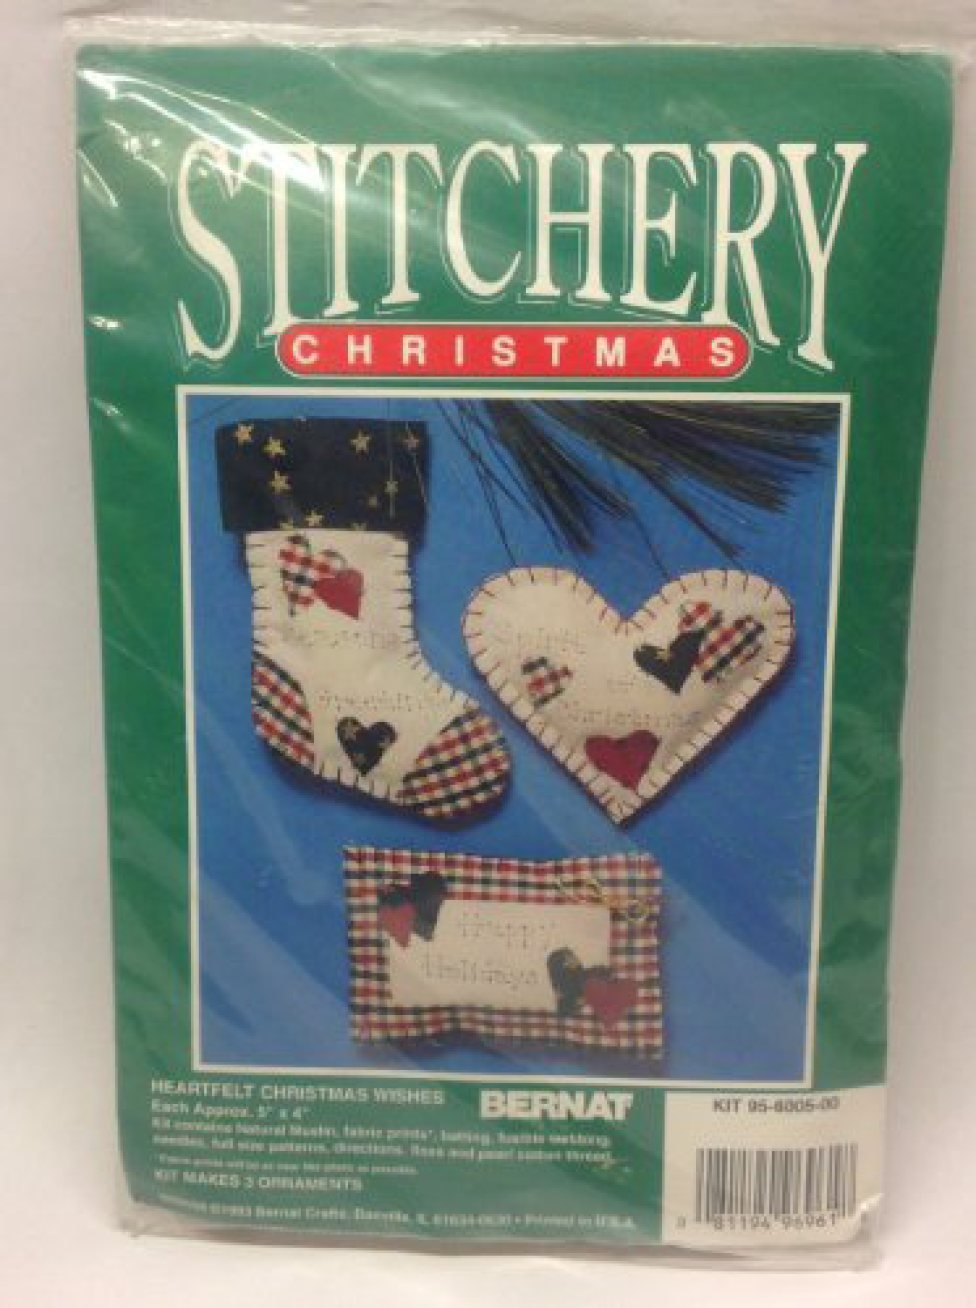 Stitchery Christmas Ornaments Kit